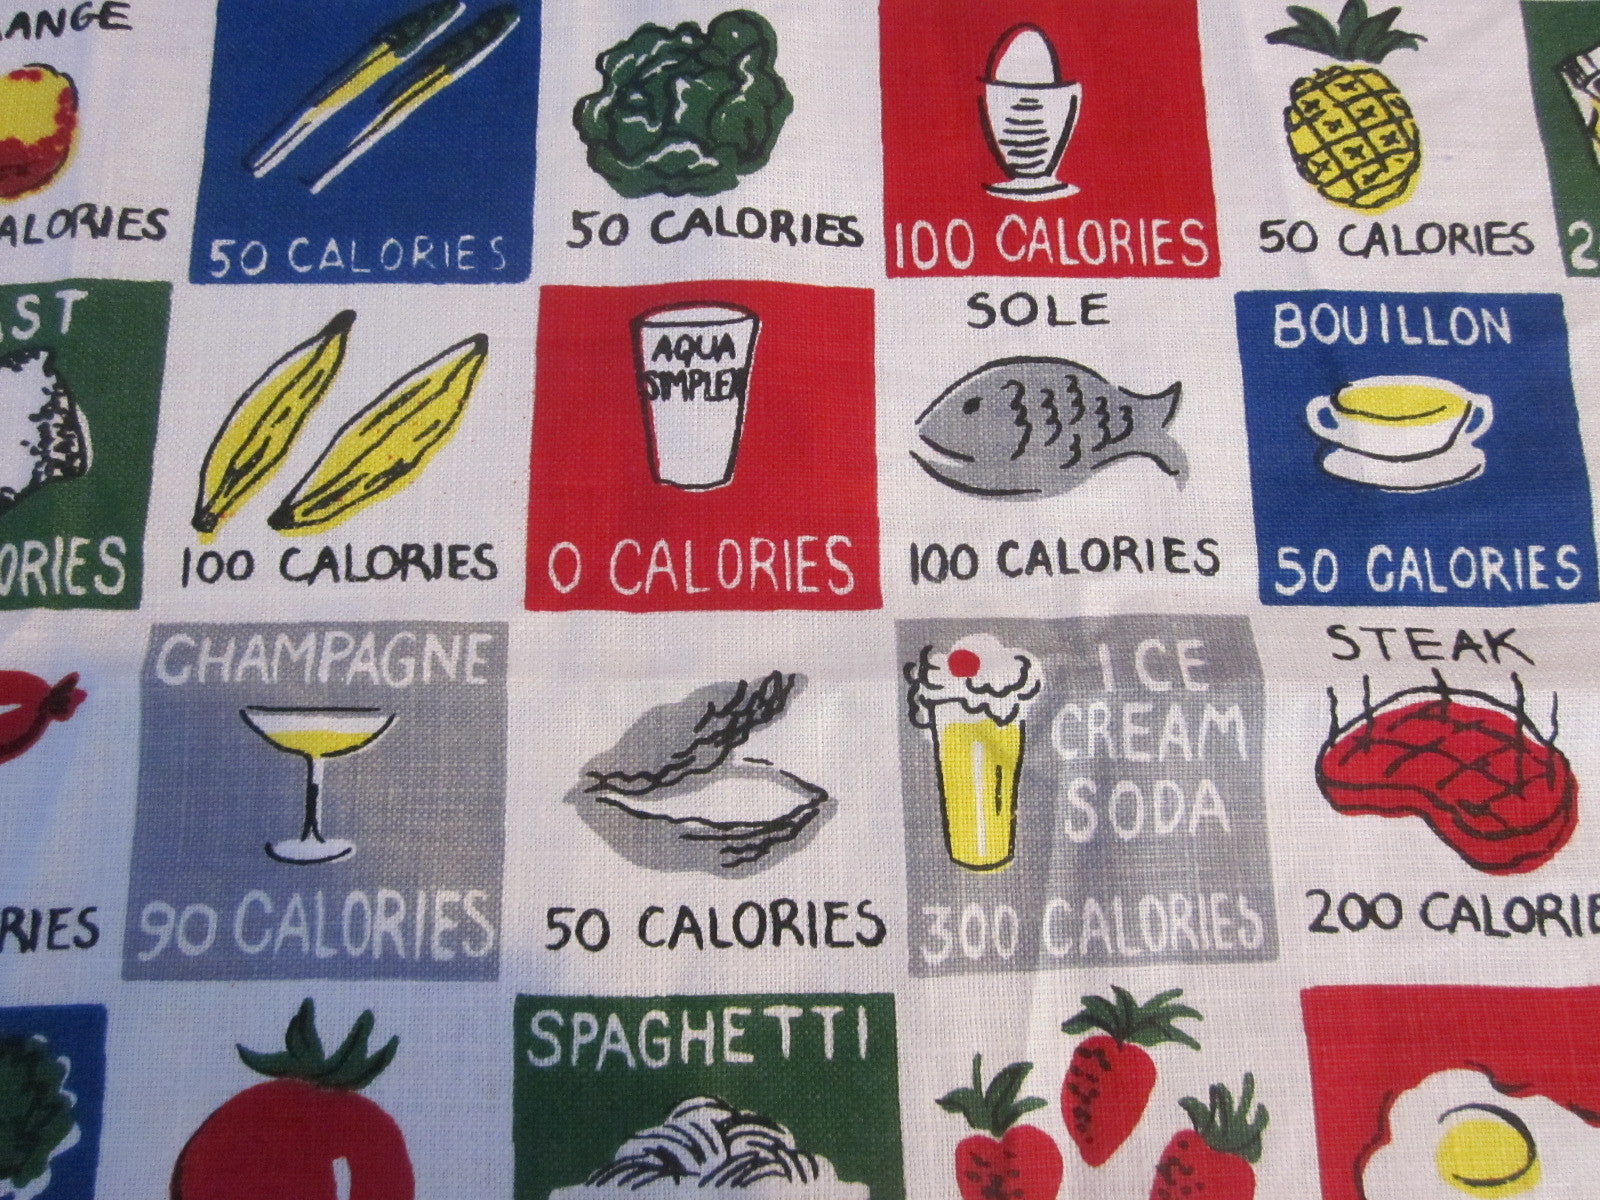 Unwashed Linen Calories Novelty Vintage Printed Tablecloth (52 X 50)